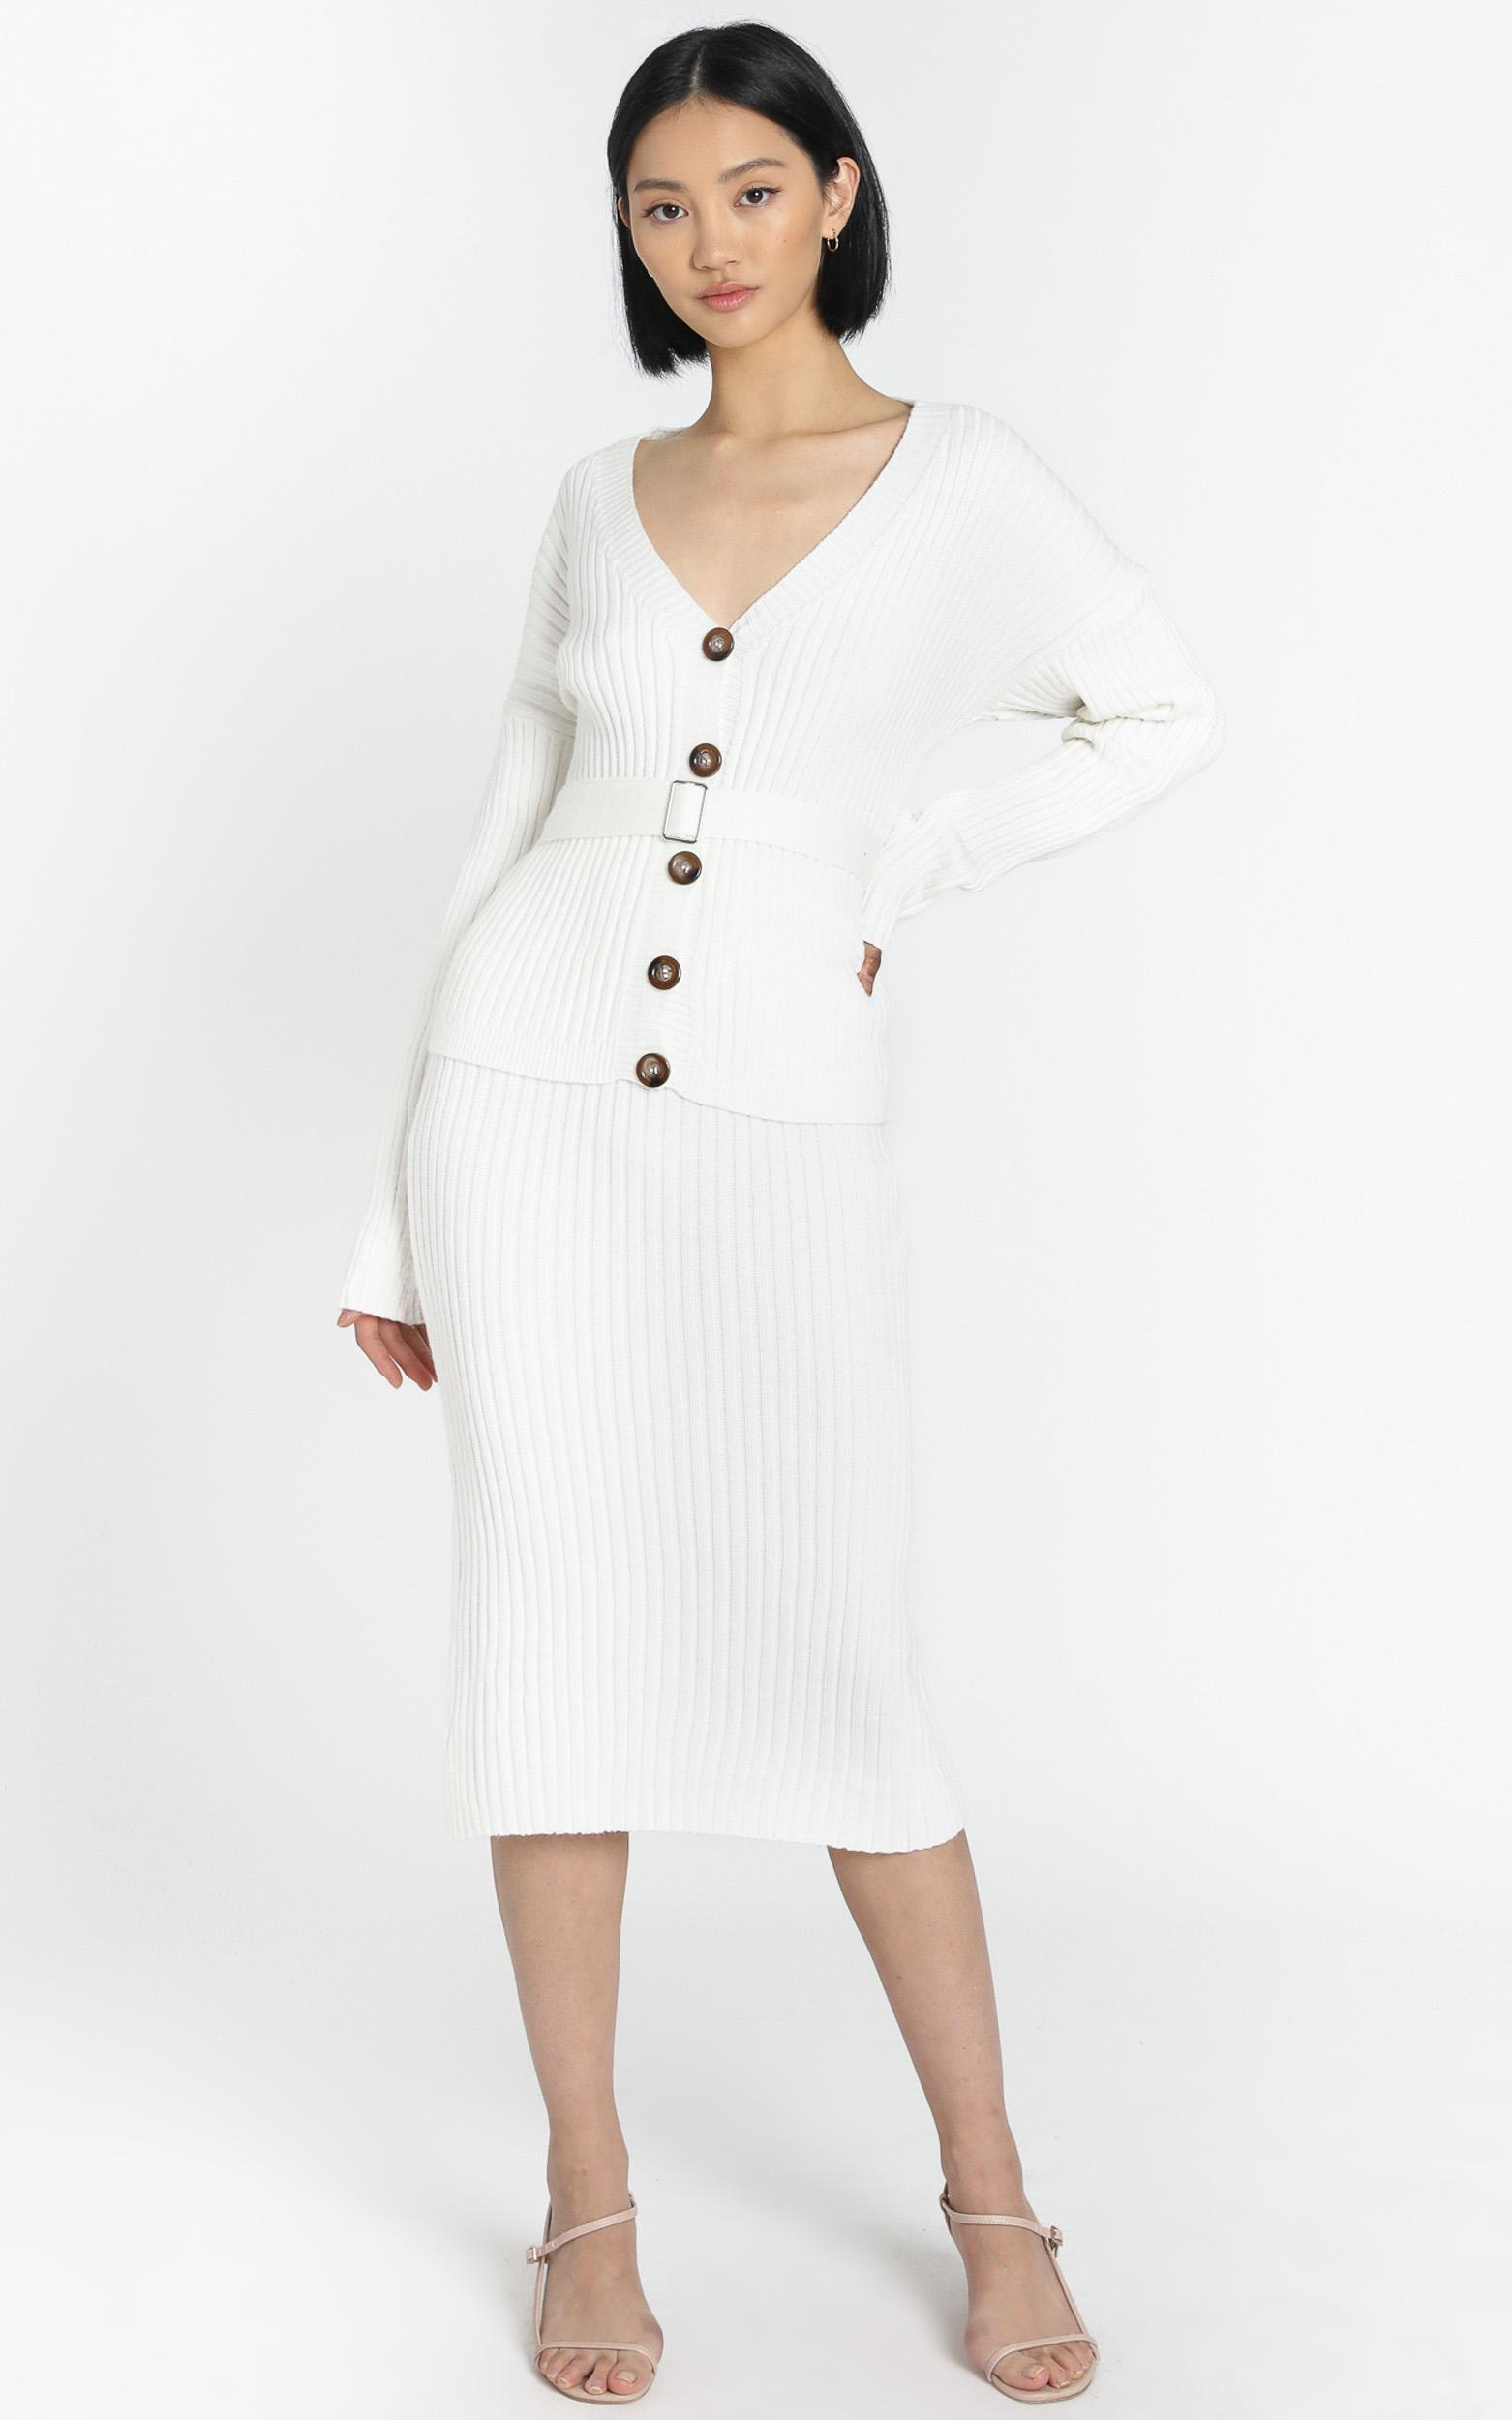 Vassalli Knitted Two Piece Set in white - S/M, White, hi-res image number null